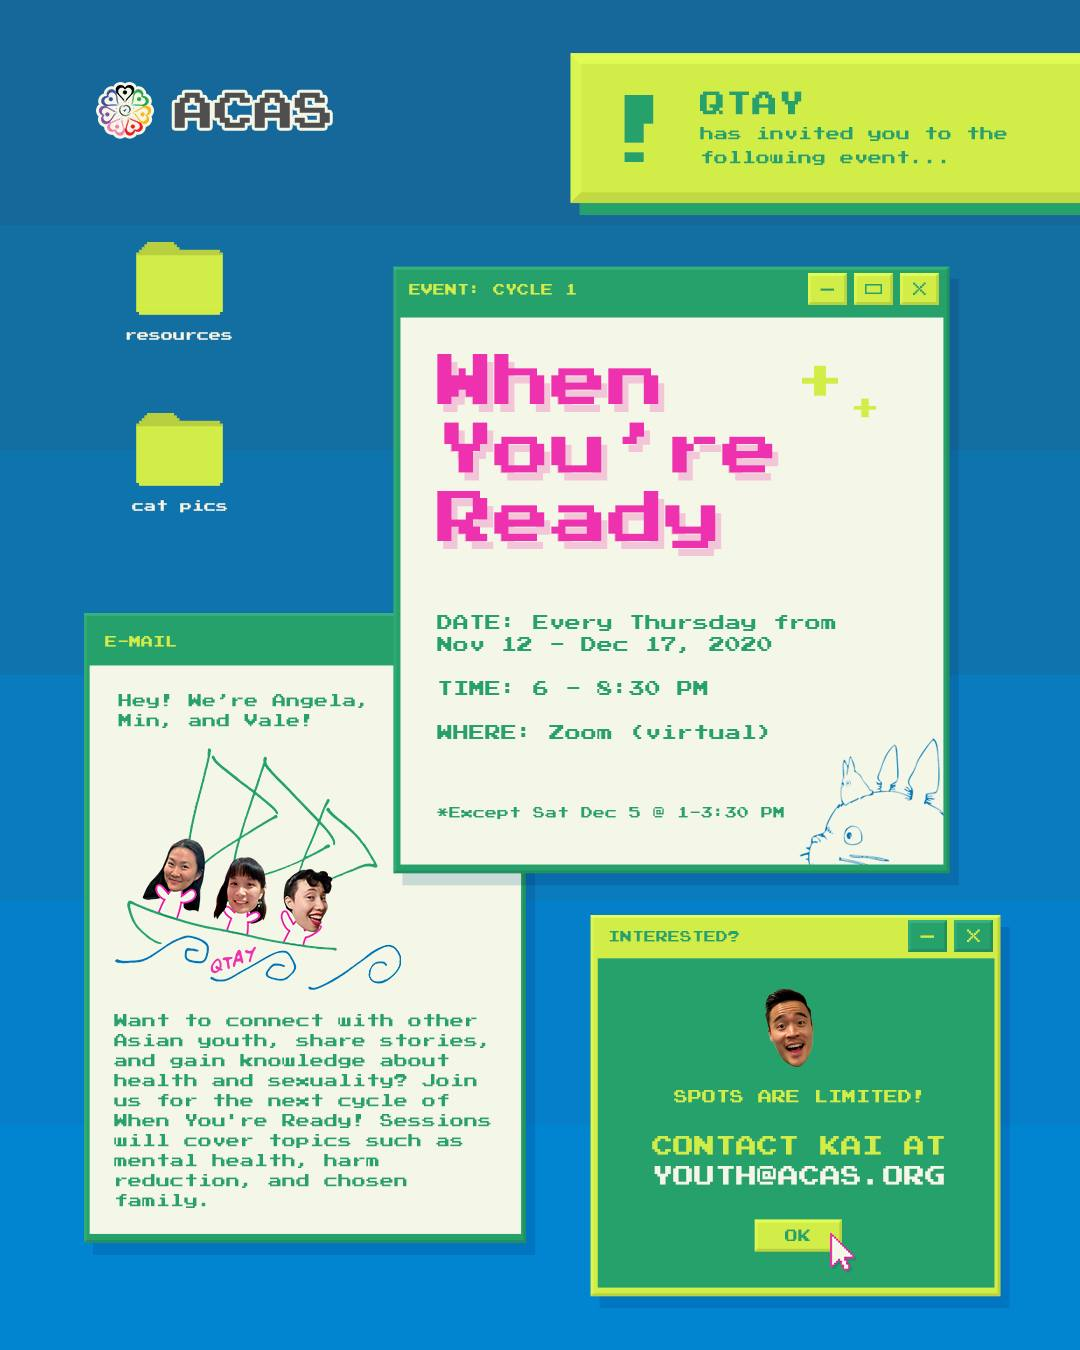 poster for queer asian youth when you're ready cycle 1